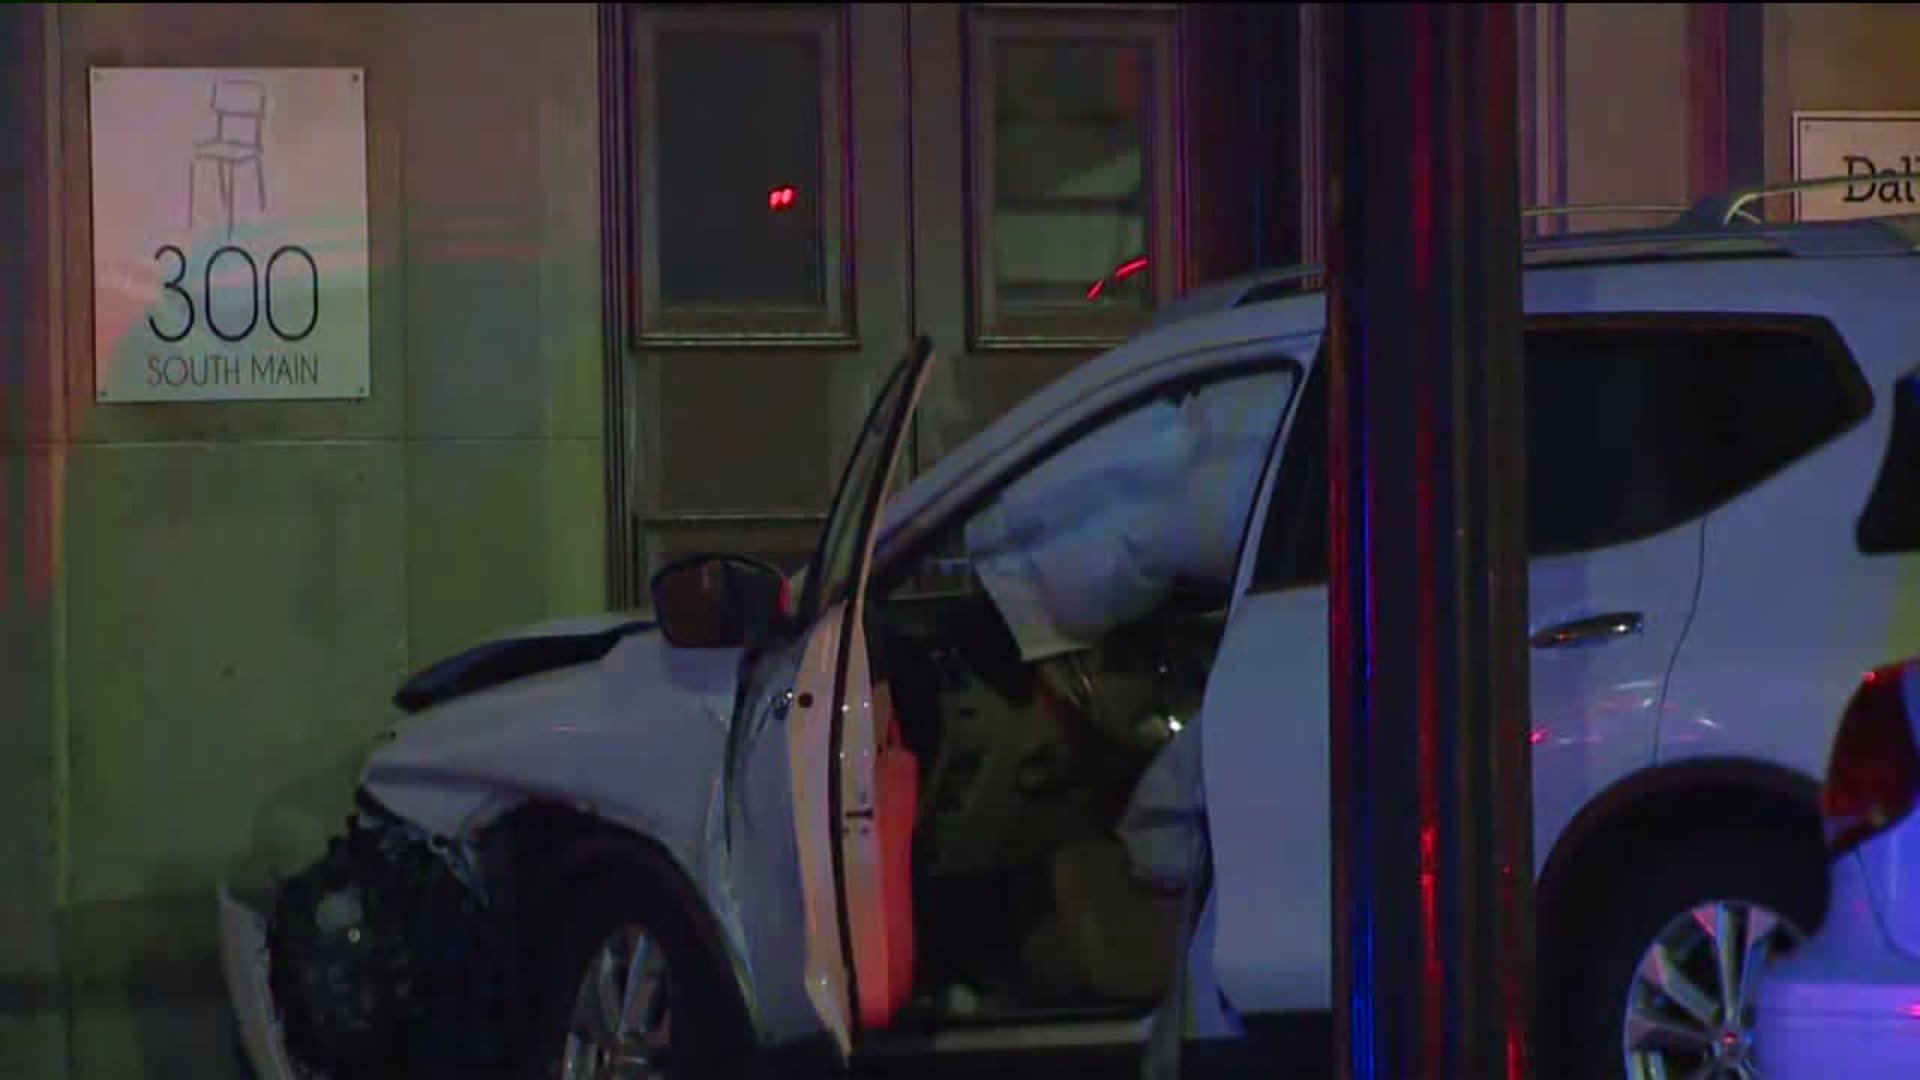 Vehicle crashes into building in High Point